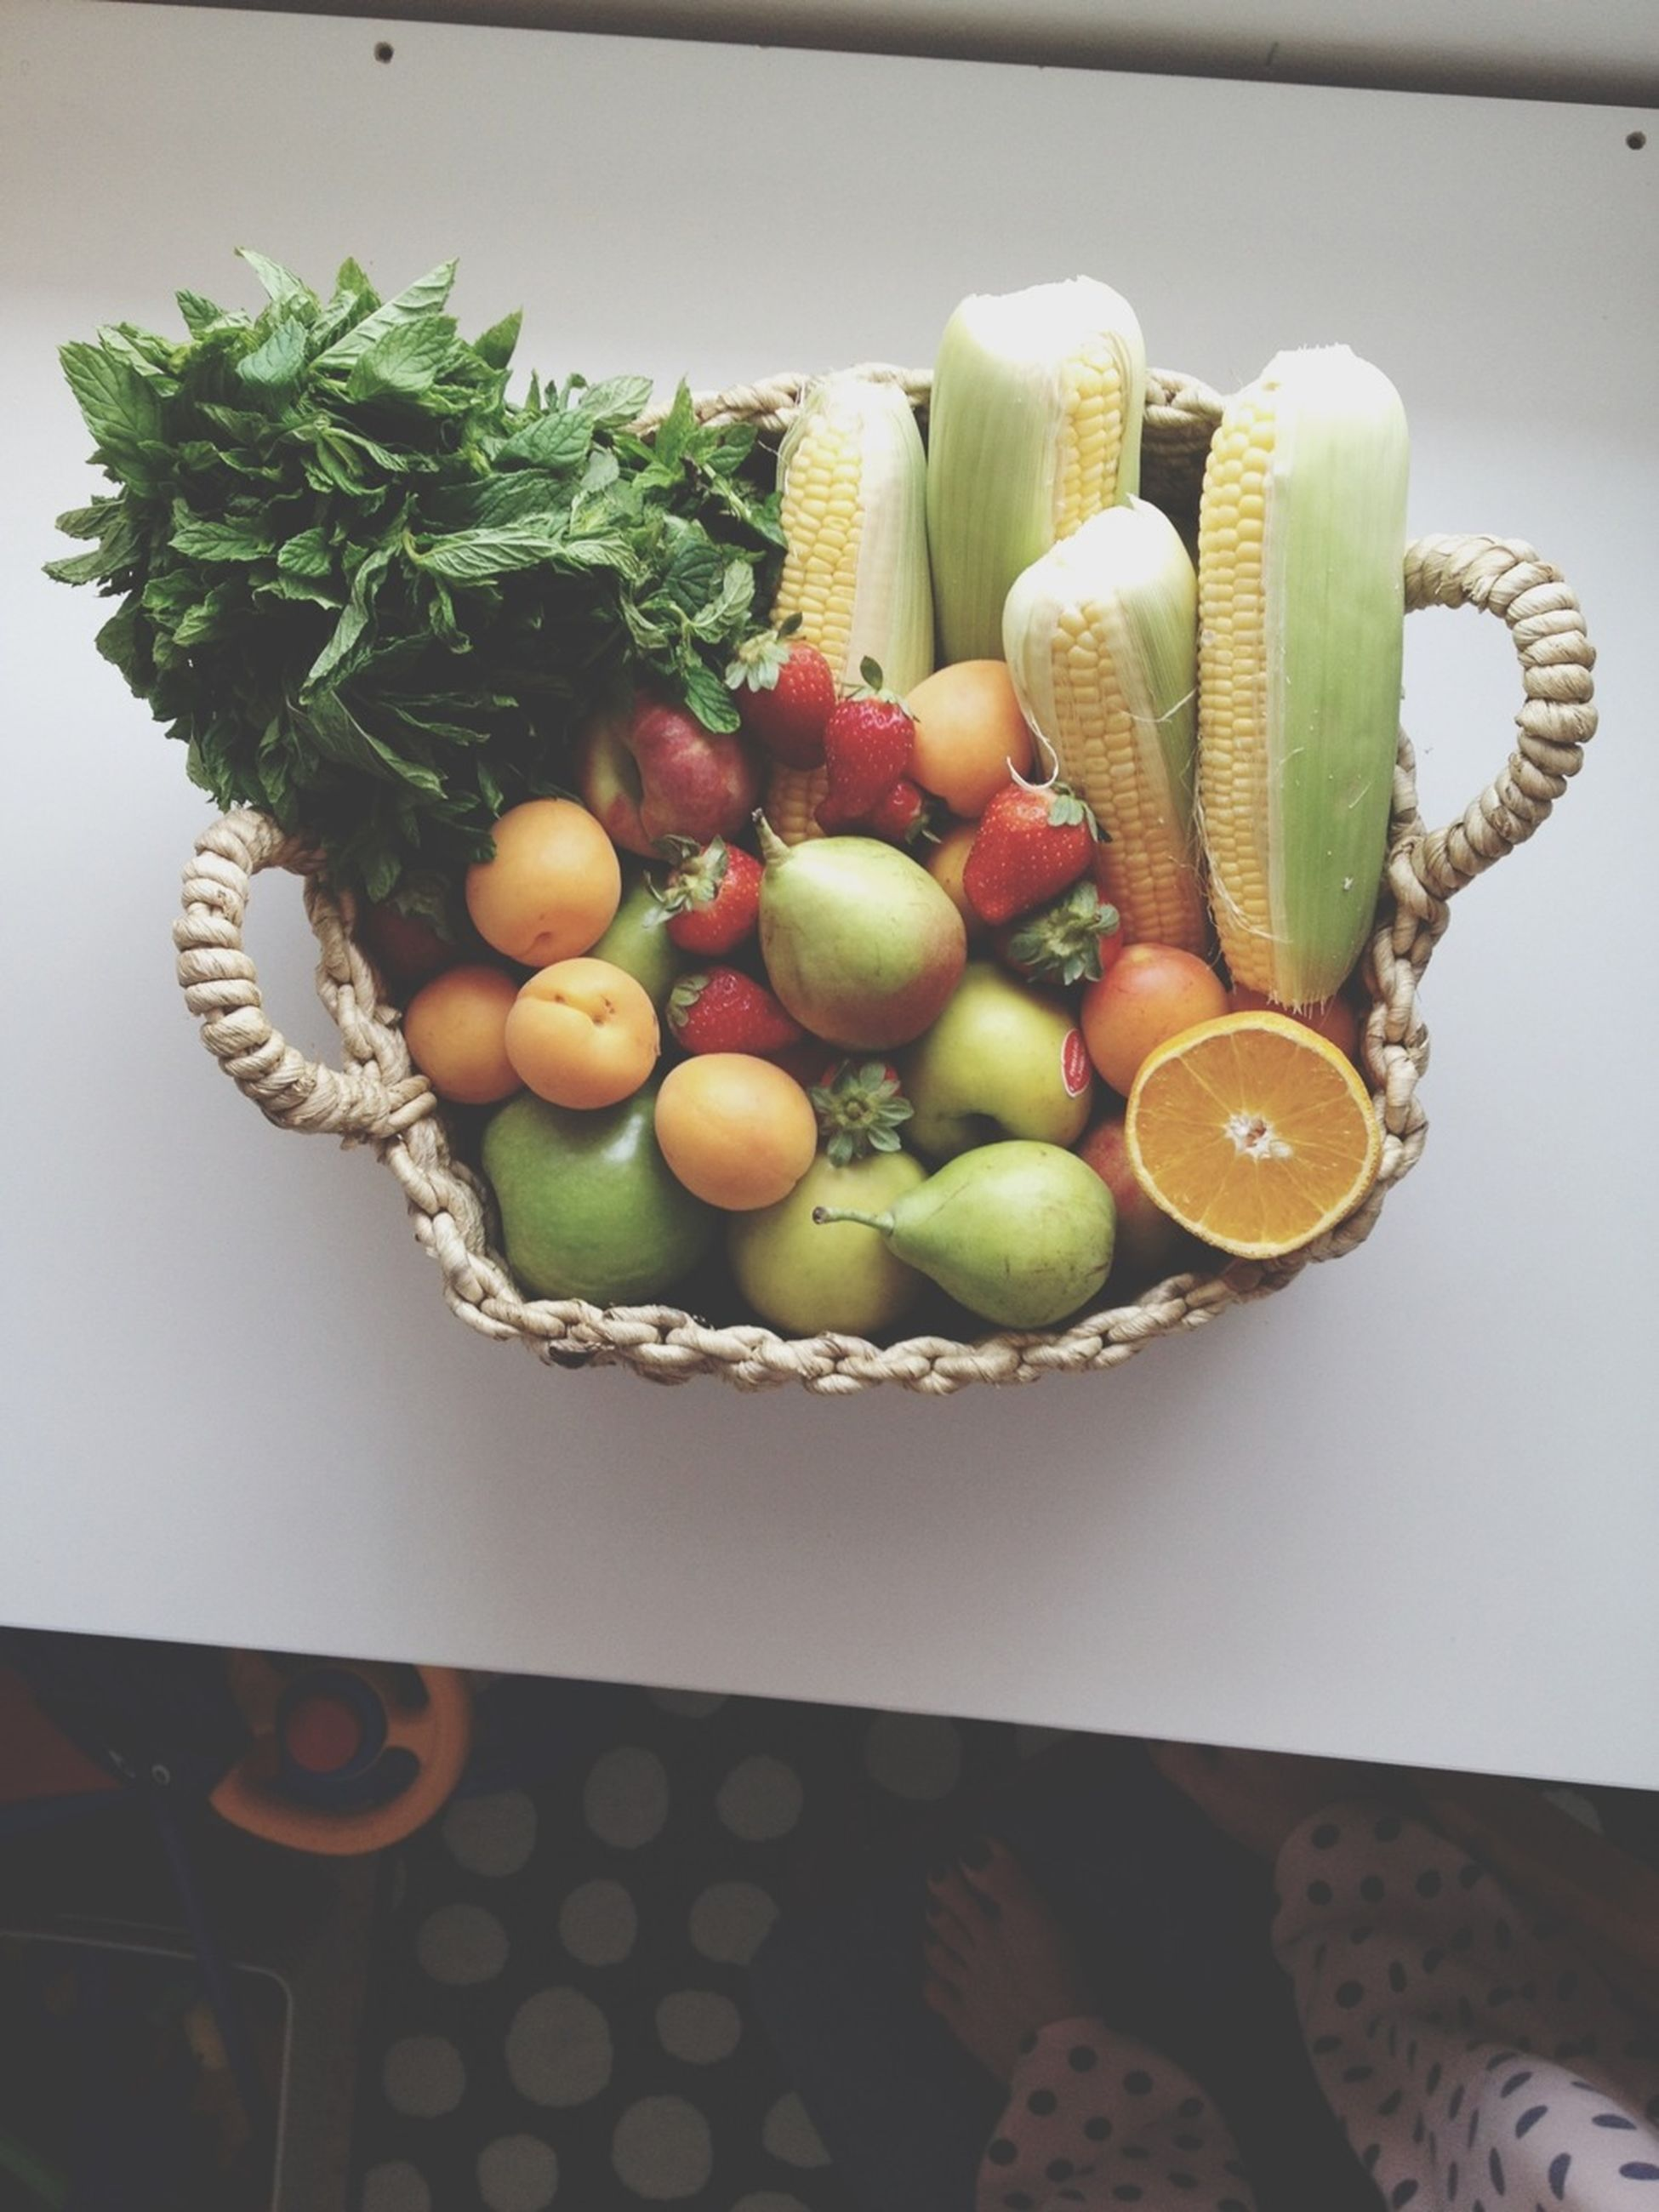 food and drink, food, indoors, still life, fruit, table, healthy eating, freshness, high angle view, variation, bowl, grape, plate, close-up, large group of objects, directly above, no people, group of objects, basket, ripe